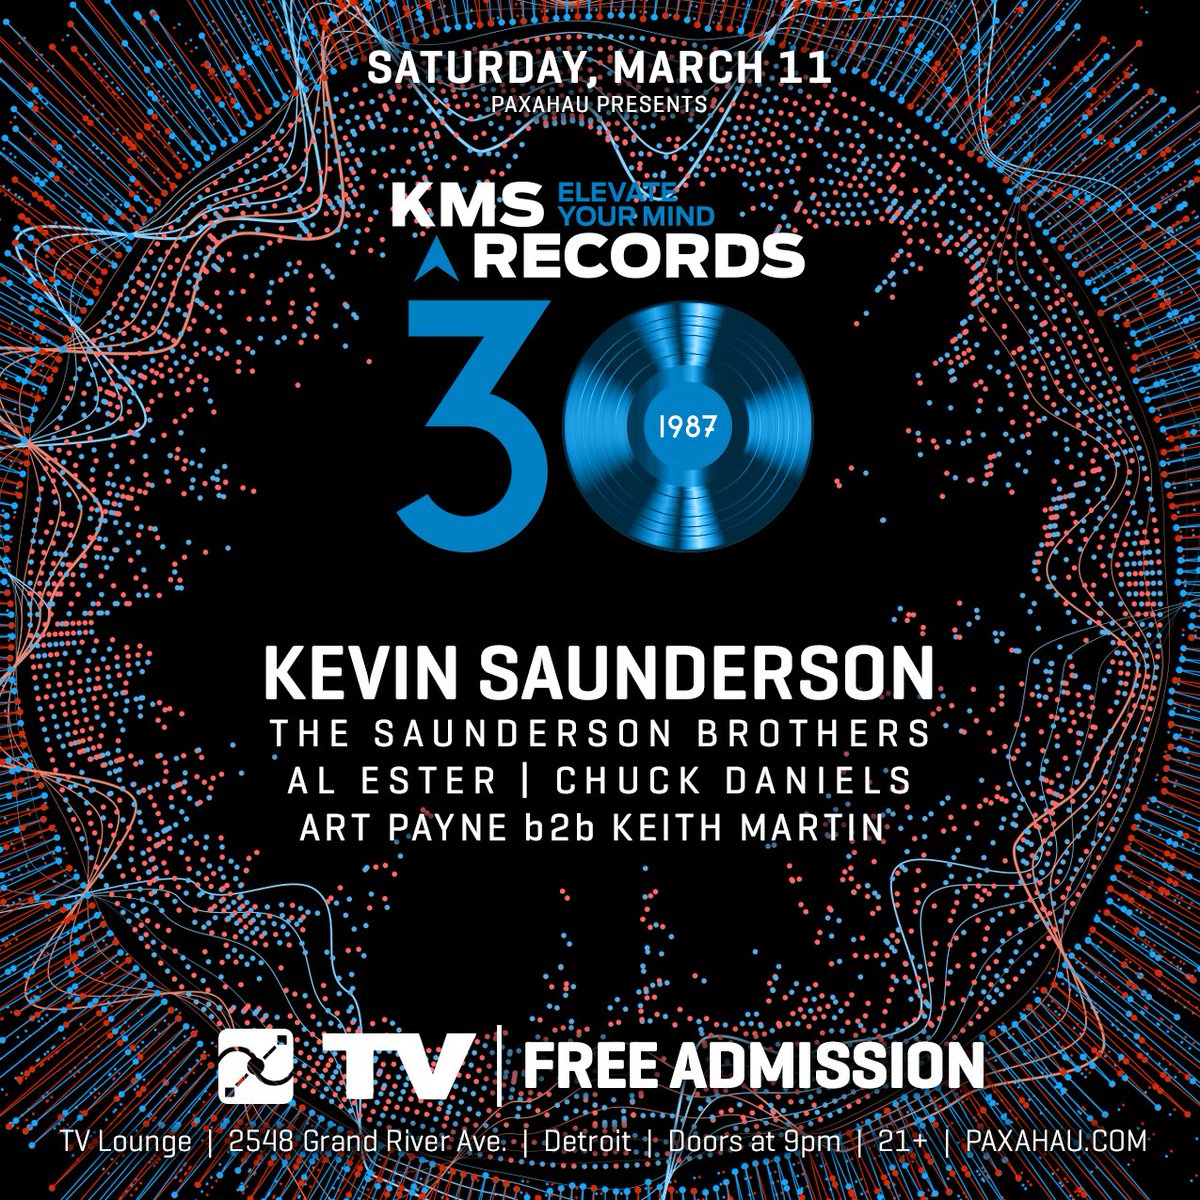 Just Announced! #KMS Records 30 Year Anniversary w/ @kevinsaunderson in 3/11 at TV Lounge. FREE admission. https://t.co/ItrqI4cSkv